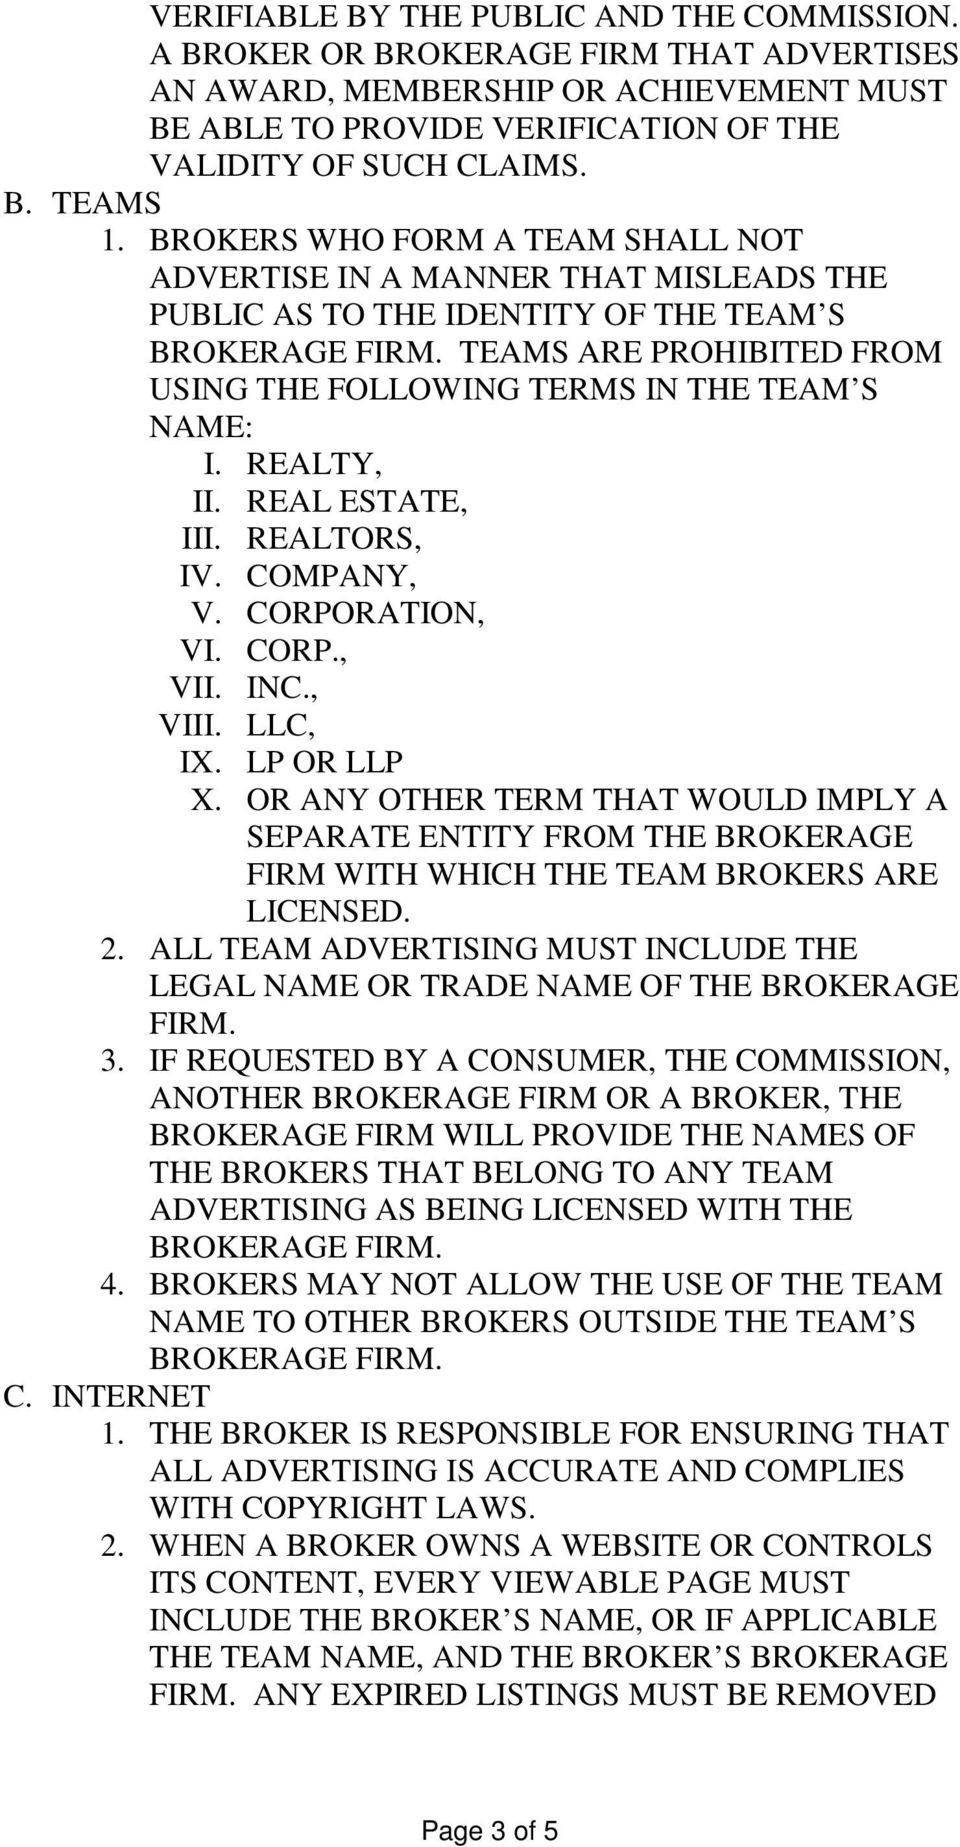 TEAMS ARE PROHIBITED FROM USING THE FOLLOWING TERMS IN THE TEAM S NAME: I. REALTY, II. REAL ESTATE, III. REALTORS, IV. COMPANY, V. CORPORATION, VI. CORP., VII. INC., VIII. LLC, IX. LP OR LLP X.